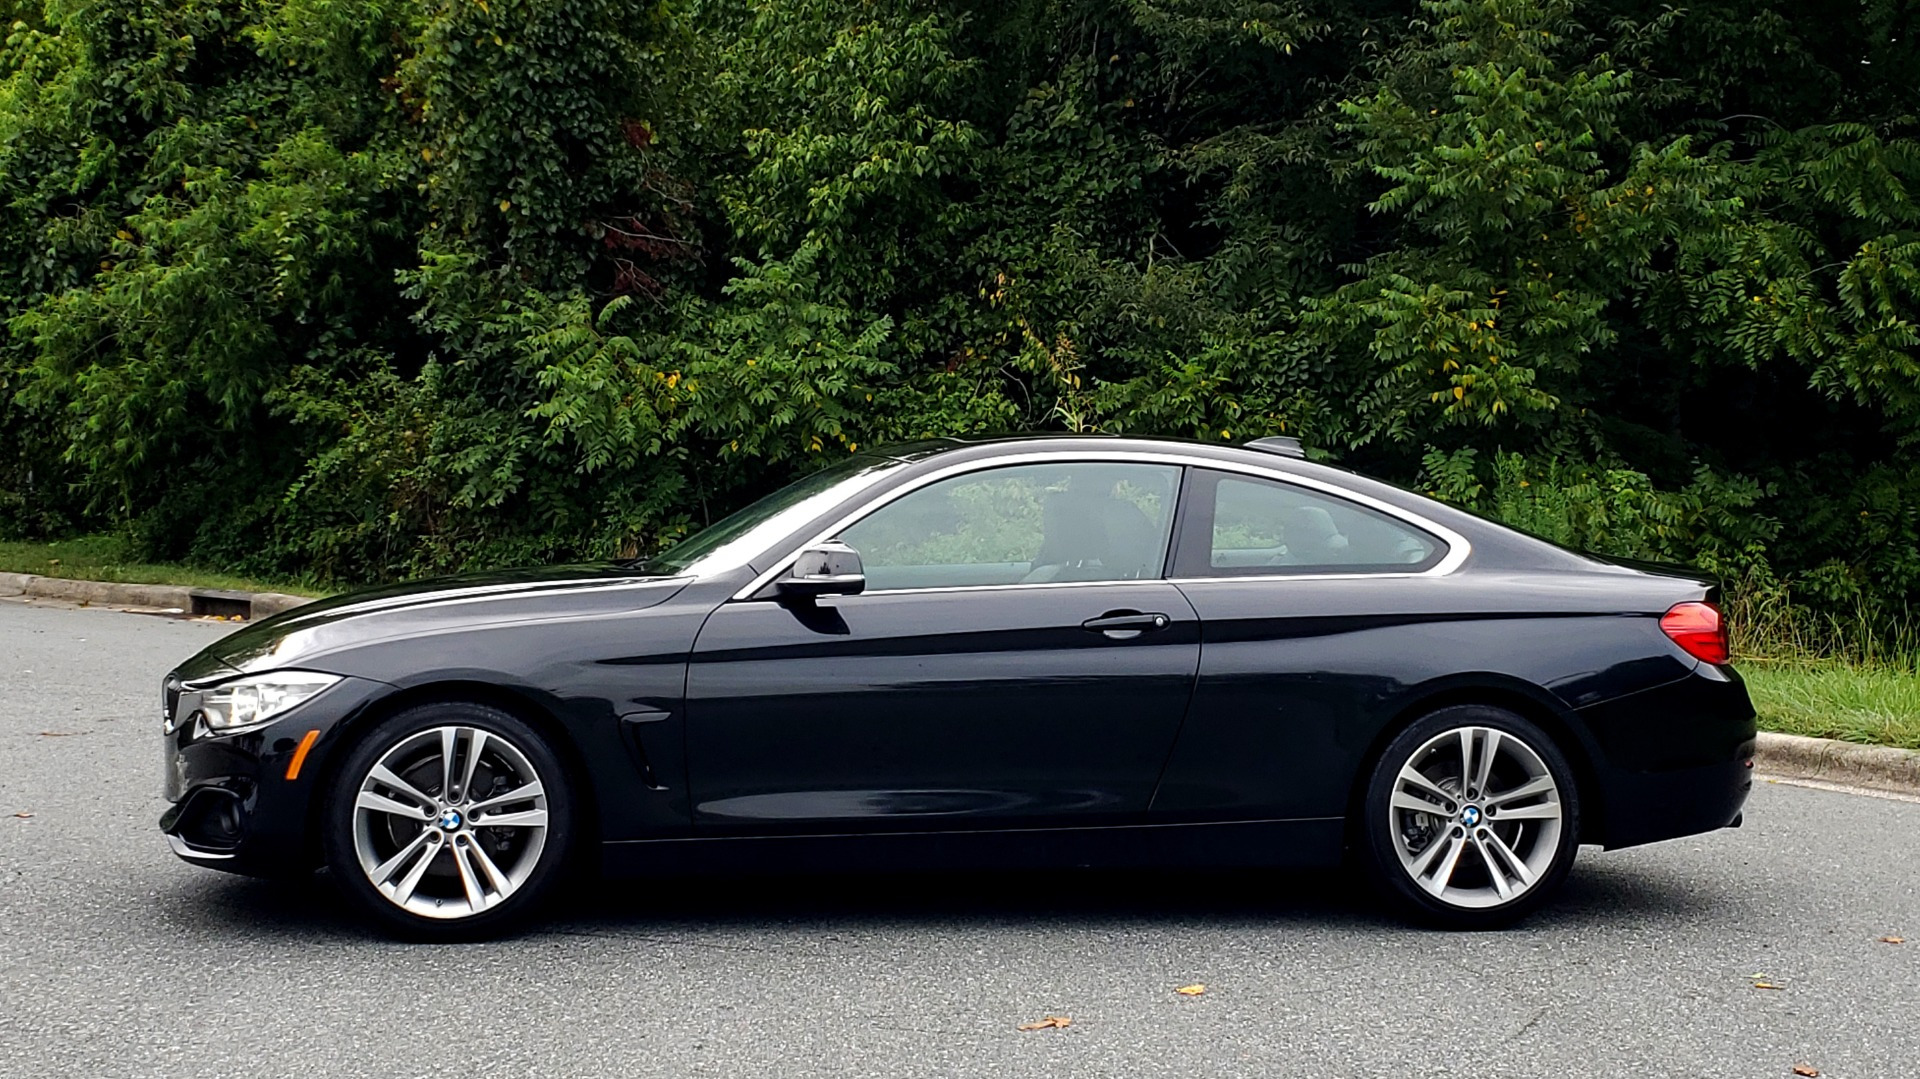 Used 2016 BMW 4 SERIES 428I PREMIUM COUPE / 2.0L / AUTO / NAV / SUNROOF / HEATED SEATS for sale $22,995 at Formula Imports in Charlotte NC 28227 2